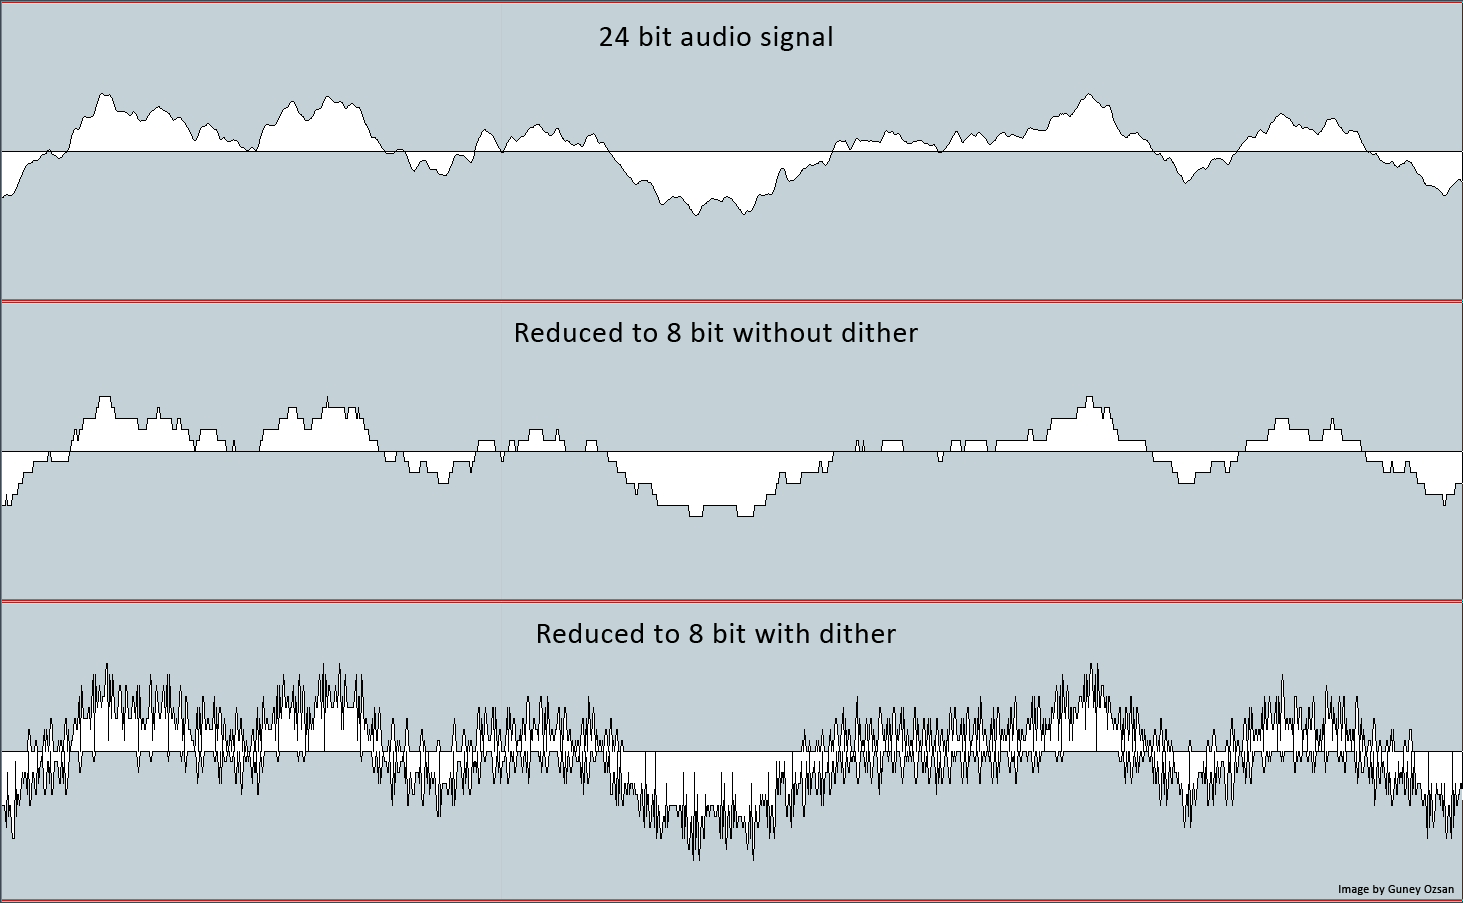 Audio-bit-reduction-from-24-bit-to-8-bit-with-and-without-dithering-CC-BY-SA-3.0